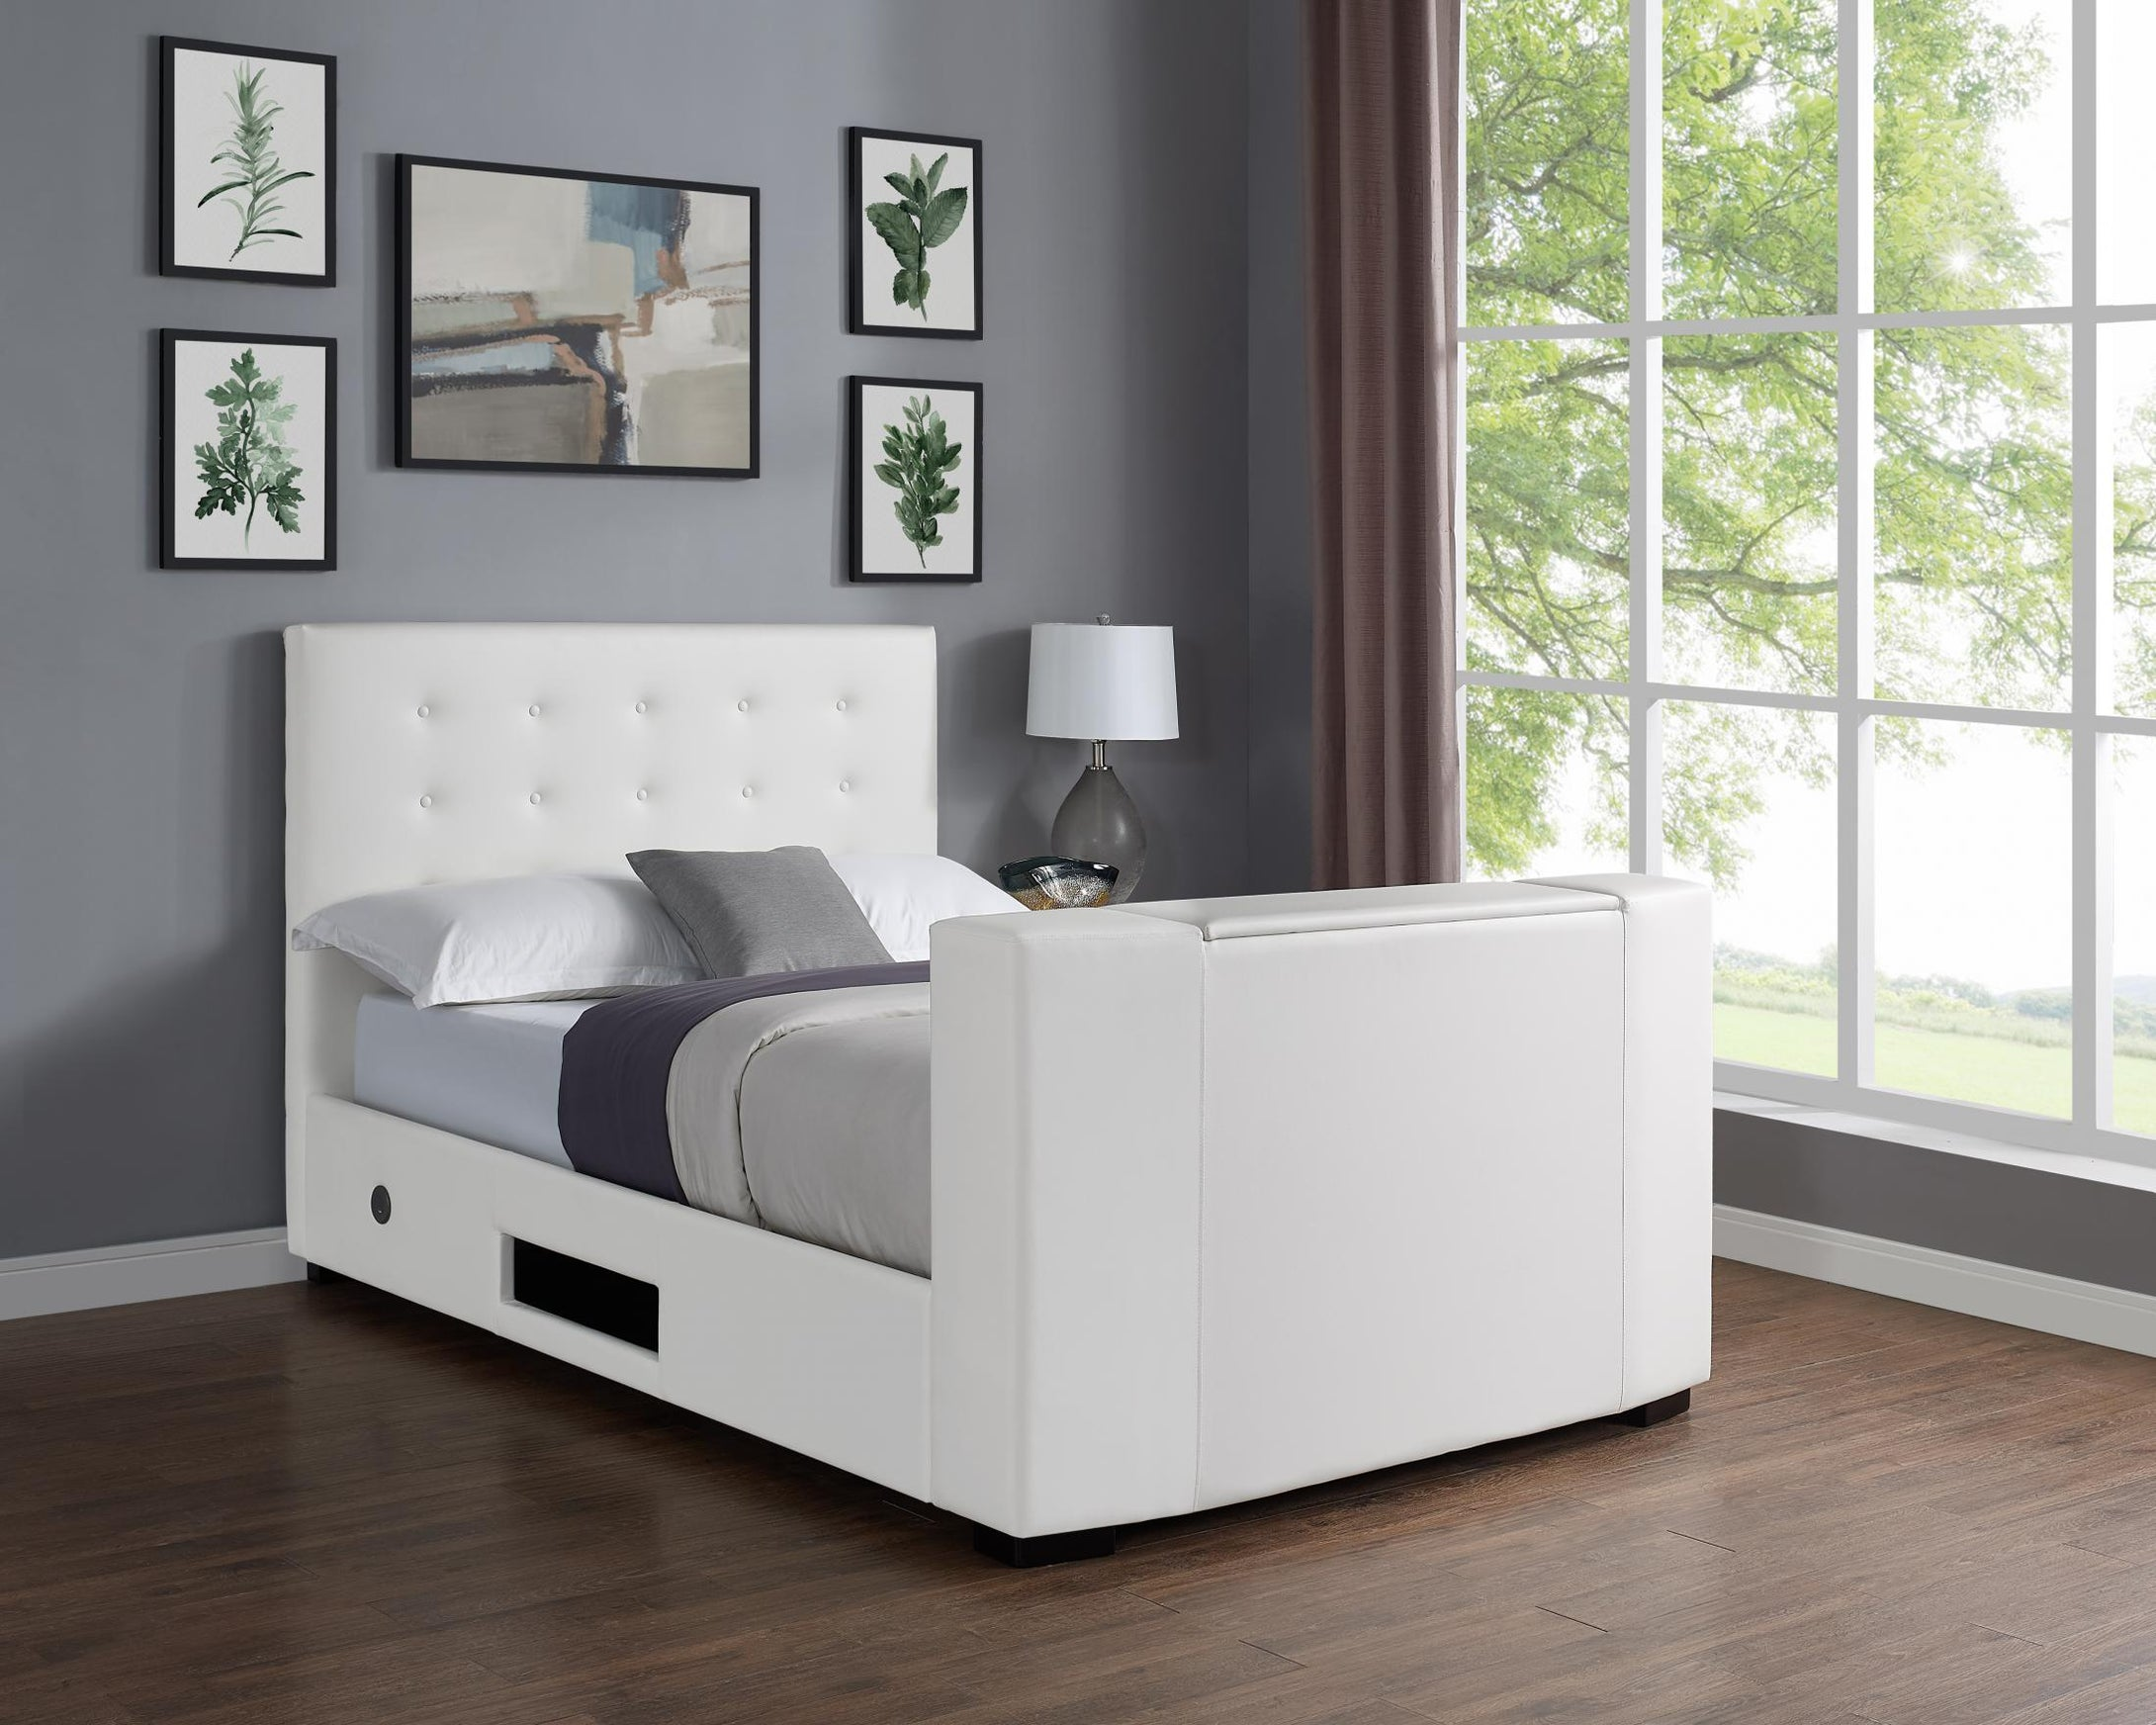 Marbella TV Bed PVC King Size Bed White